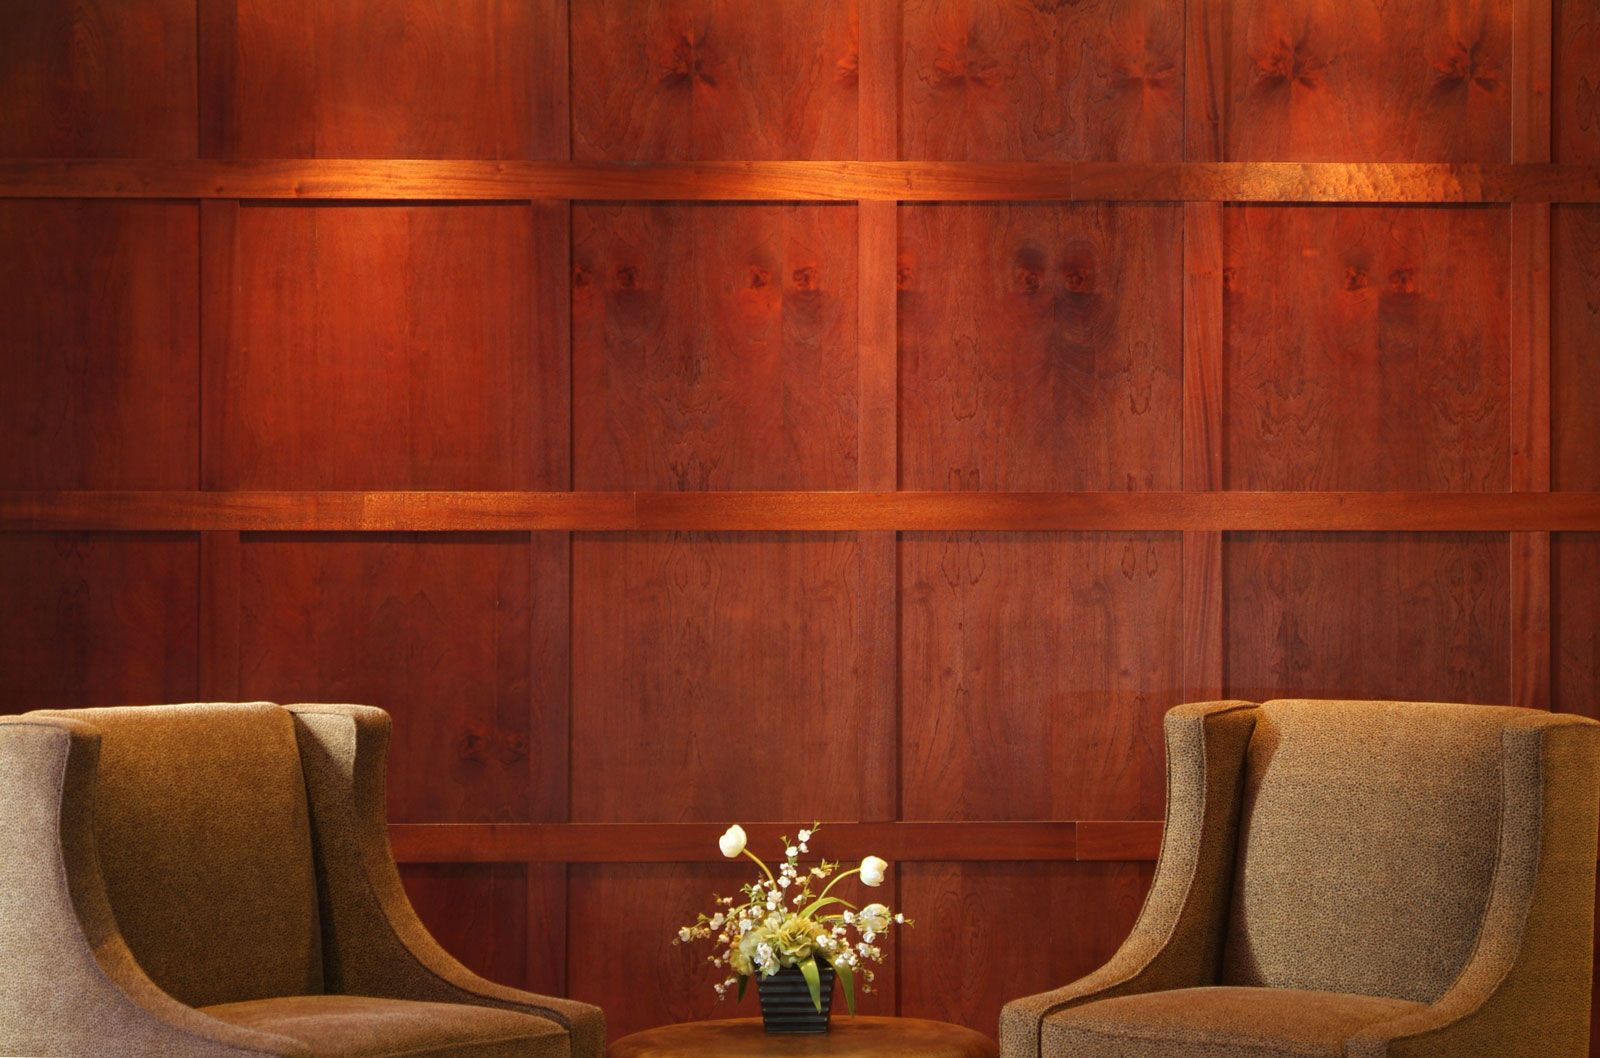 Wood Paneling For Walls Designs Amazing Wooden Wall Paneling Designs Modern Paneling